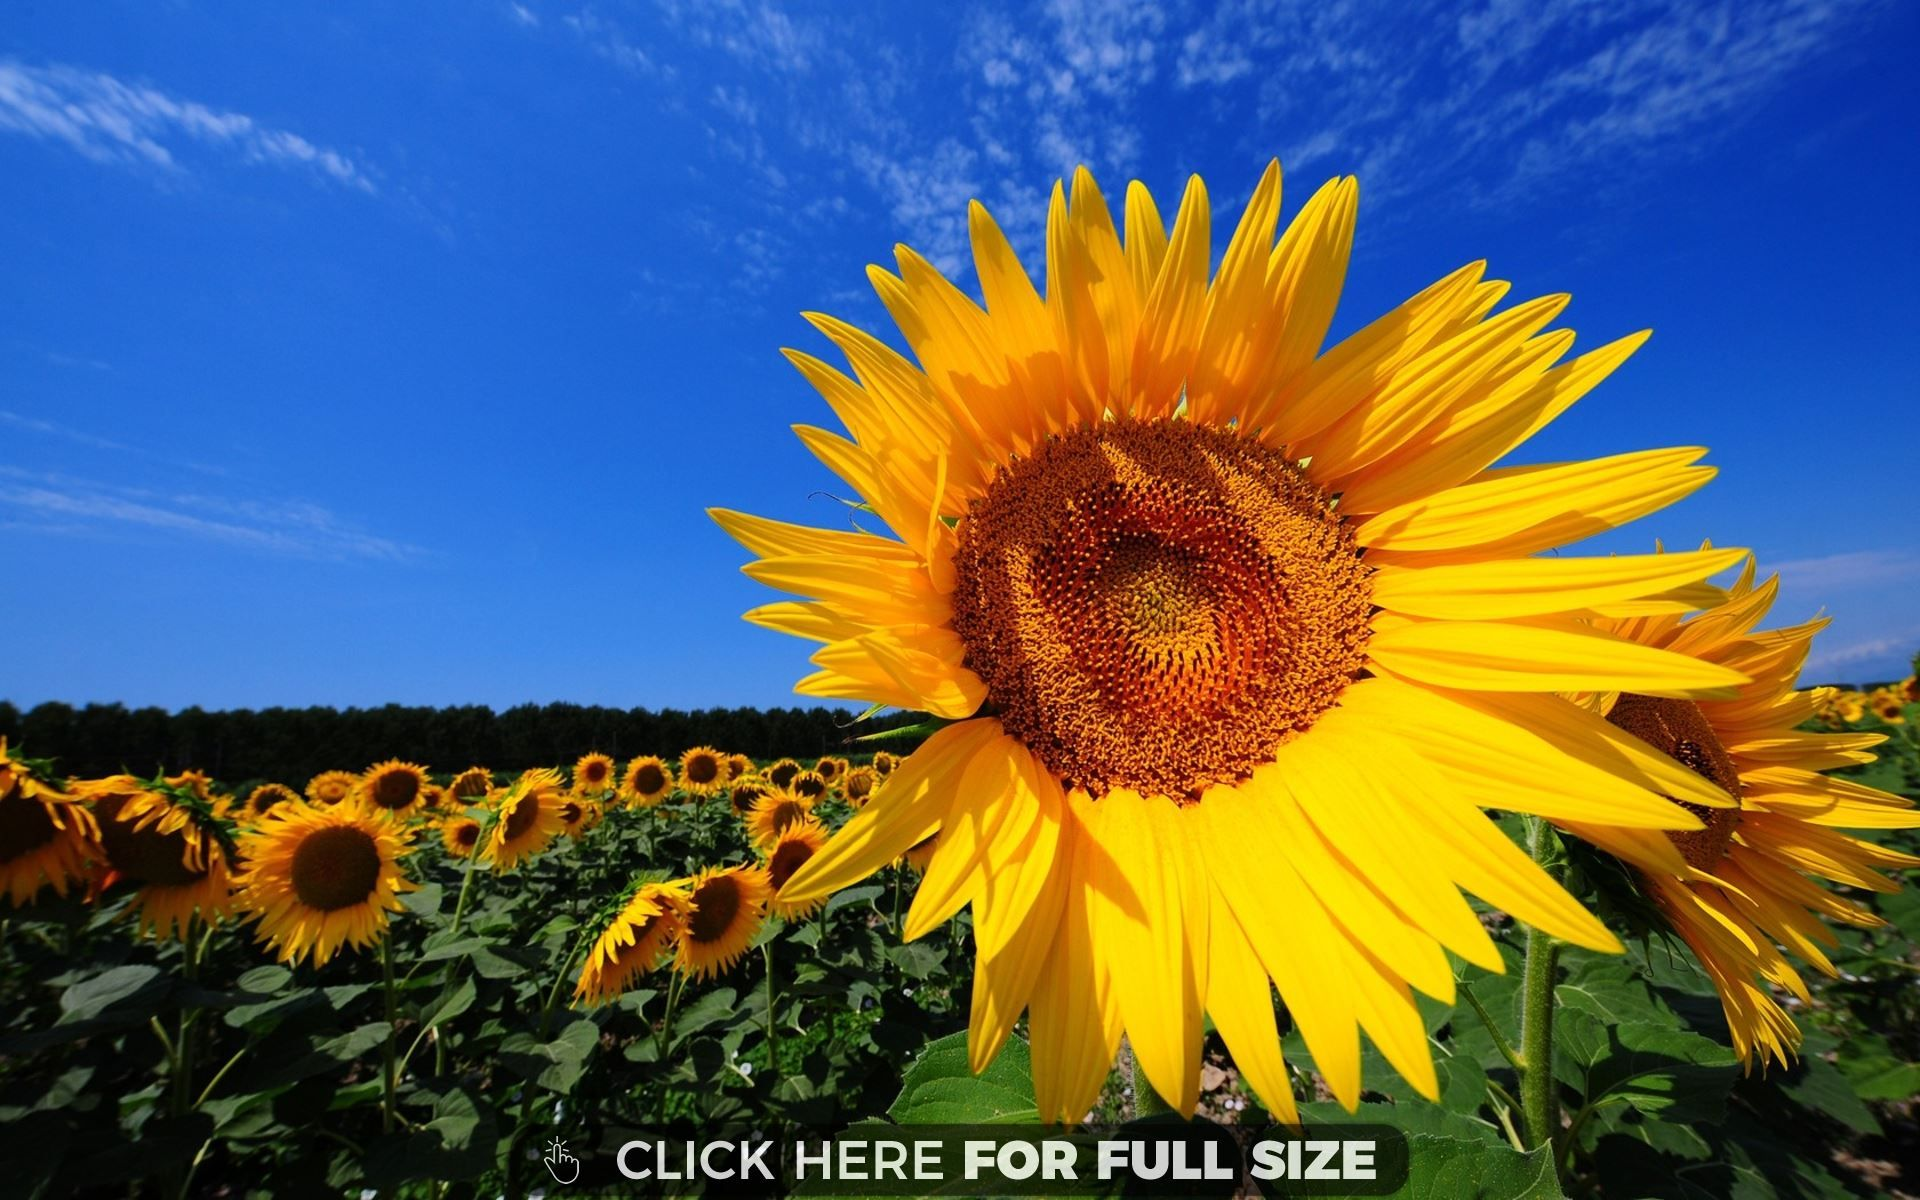 Sunflower Fields Wallpaper Desktop Hq wallpaper Desktop